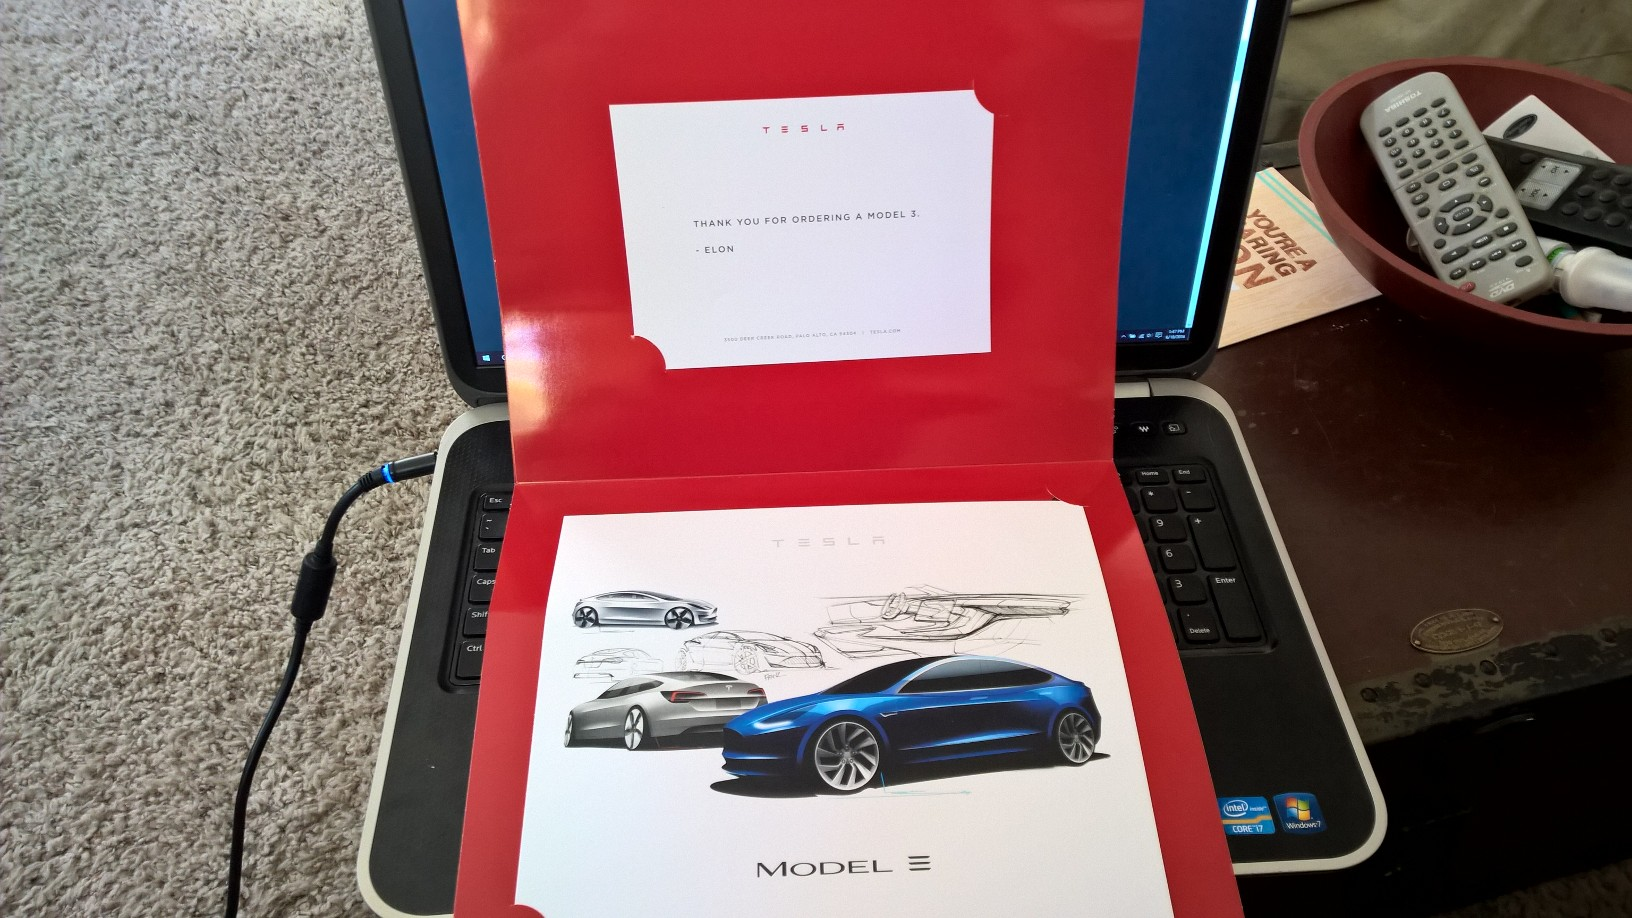 """Tesla sends Model 3 """"token of appreciation"""" gift to early reservations holders"""